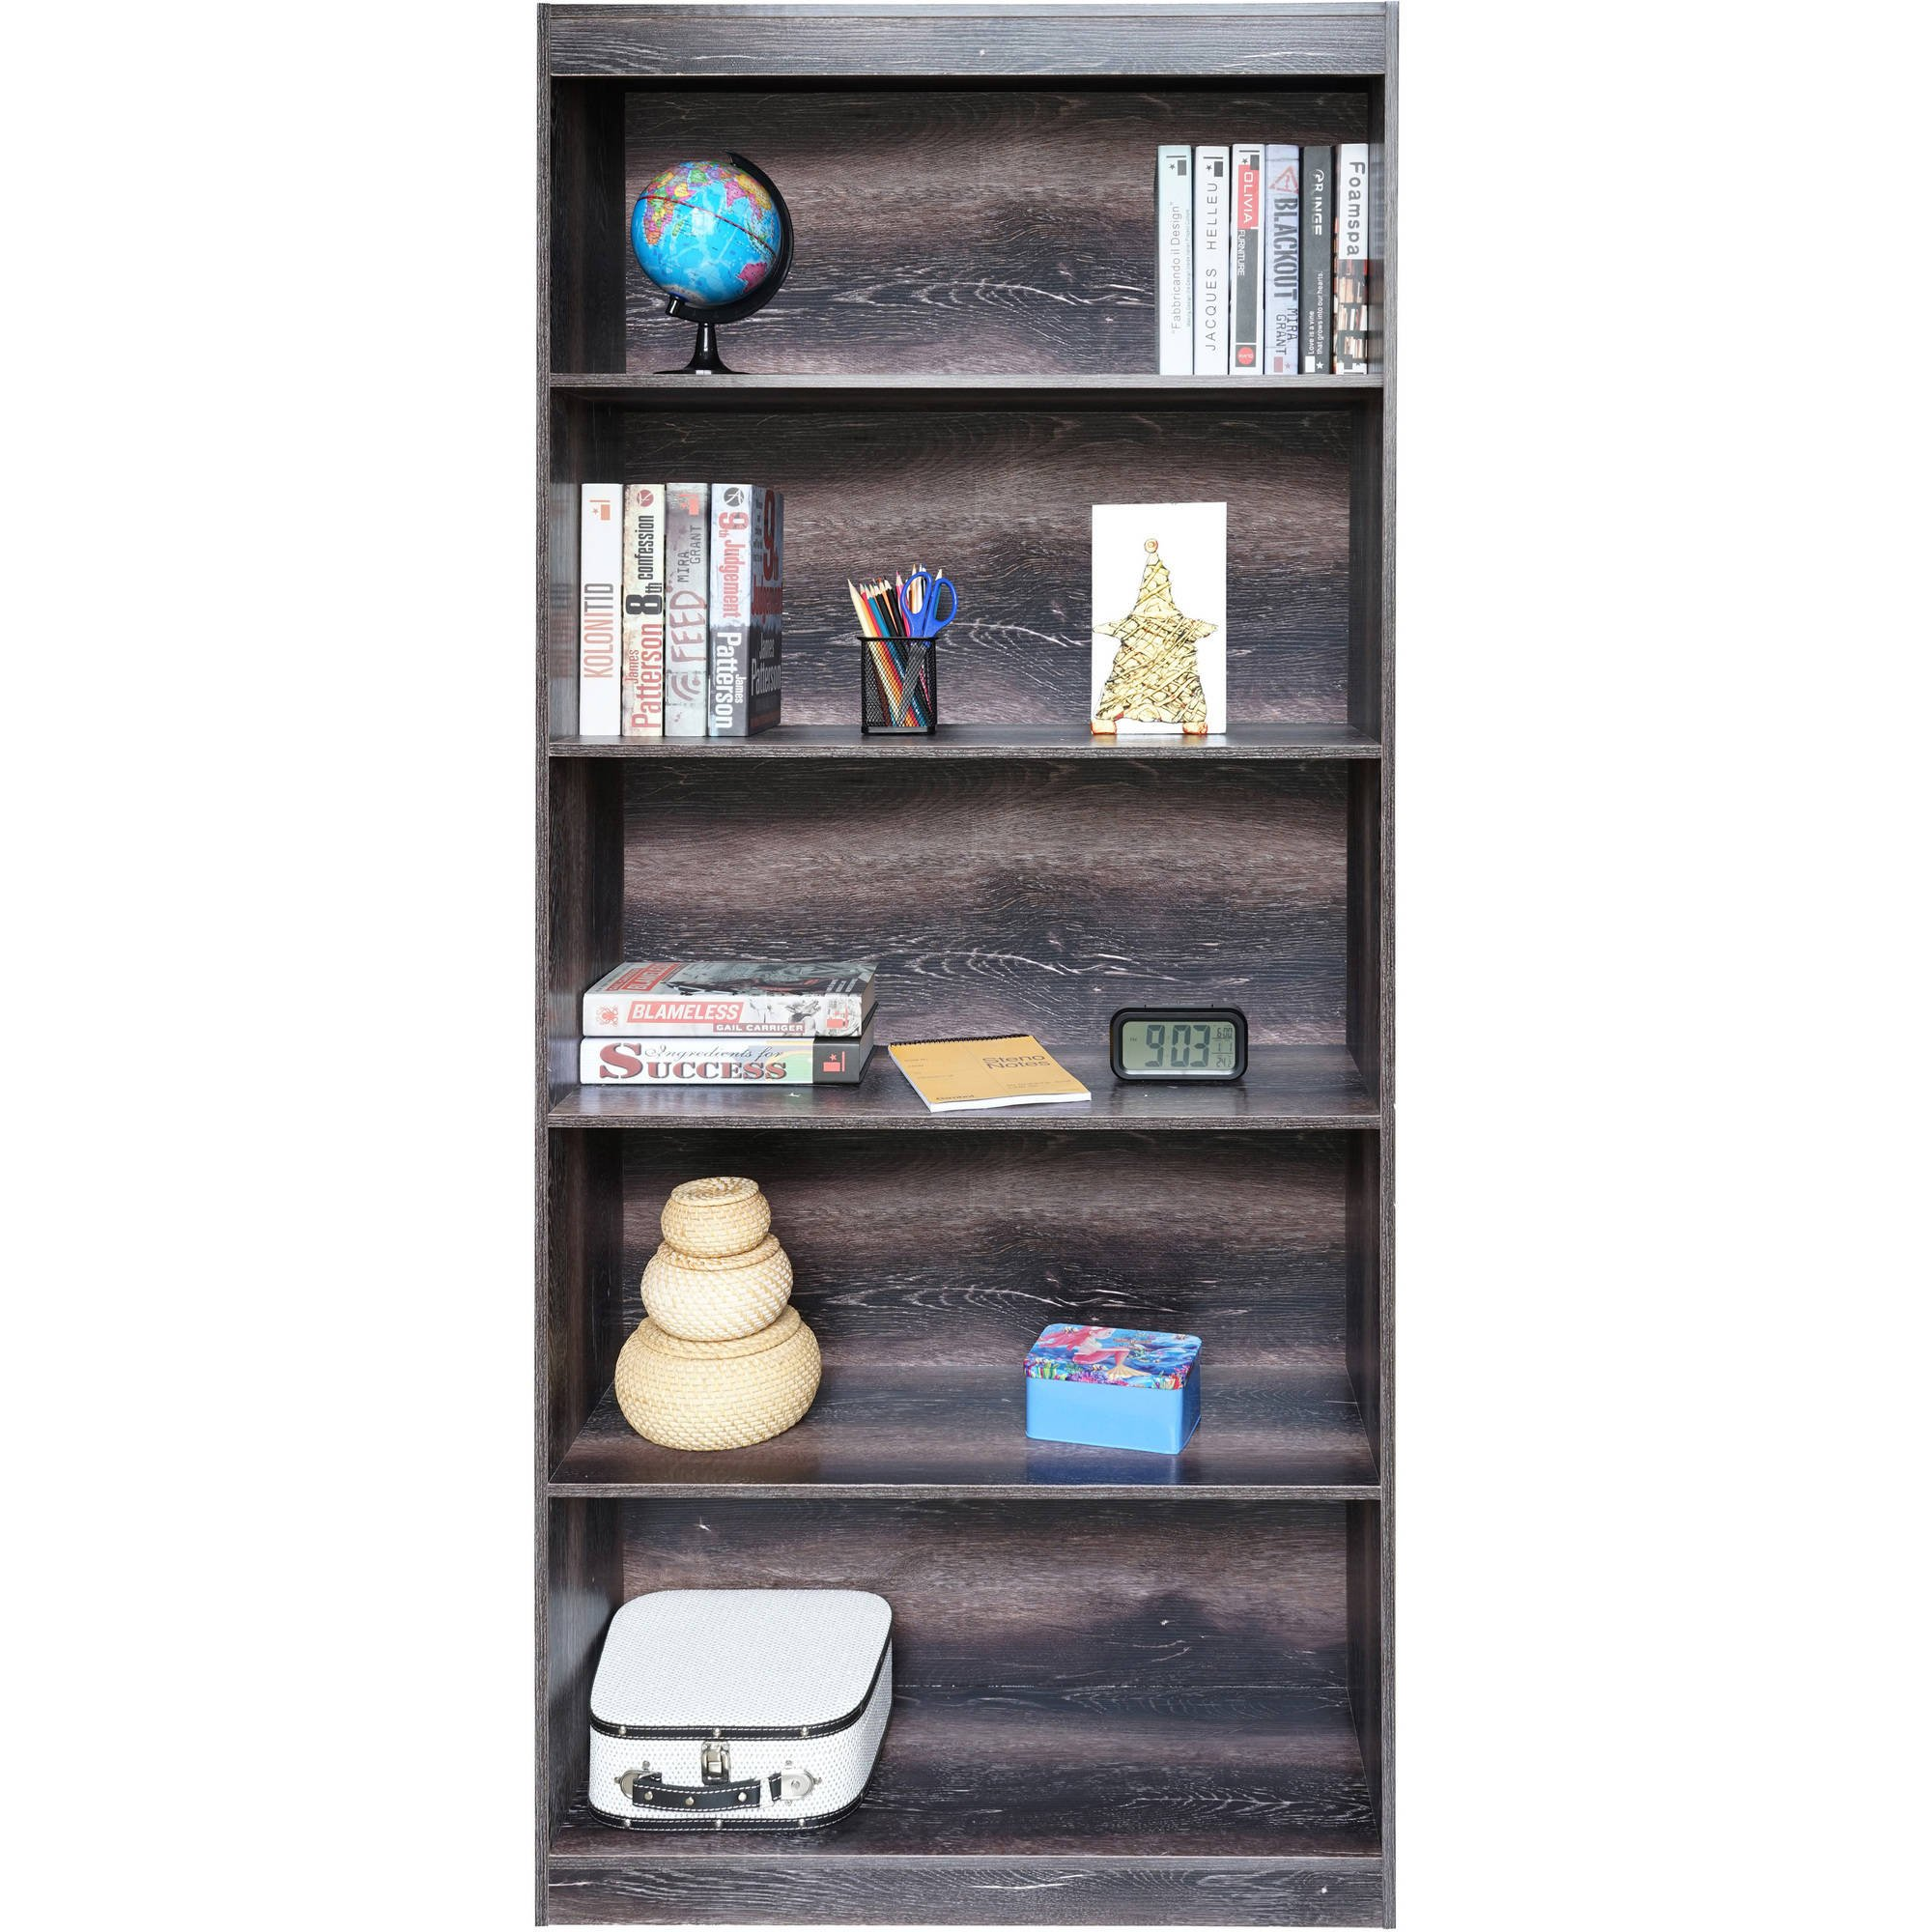 Bookshelf, Bookcase, Sturdy, Durable, Made of Solid Wood, Library, Cabinet, Storage Space, Melamine Veneer Surface, Solid Structure, Home Office, Study Room